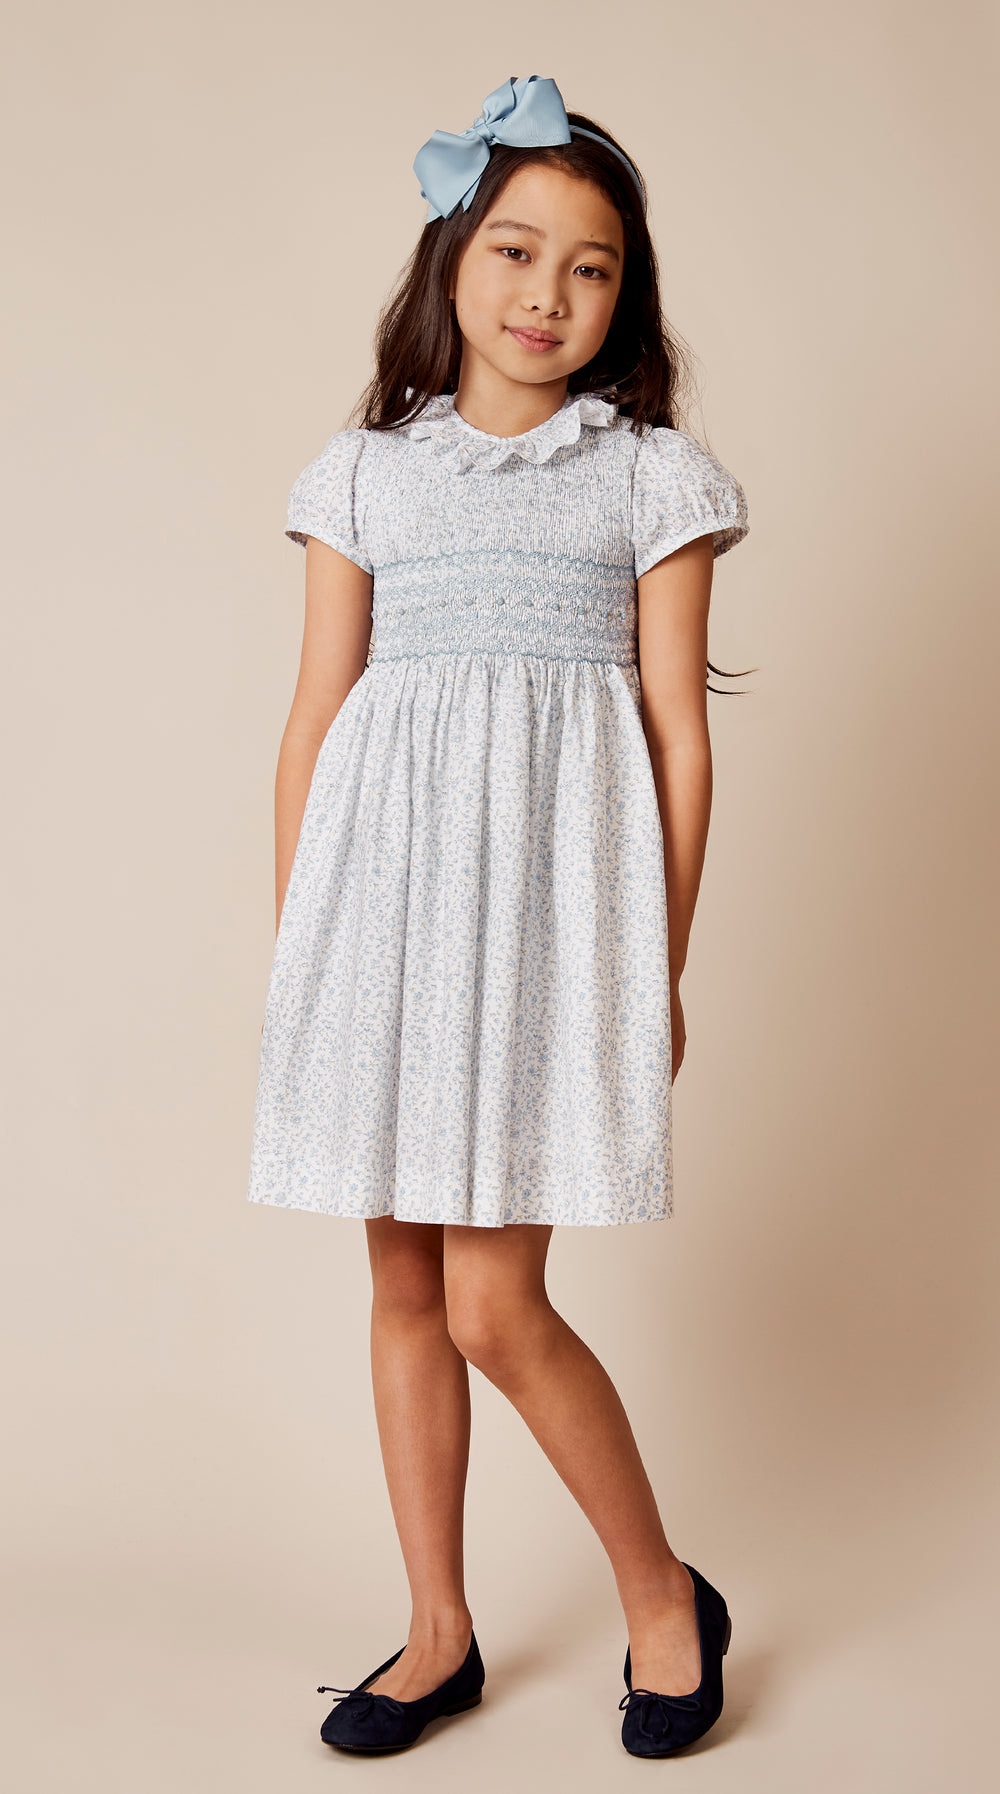 dbb6f23617 Traditional Children's Clothing | Pepa & Co – PEPA AND CO